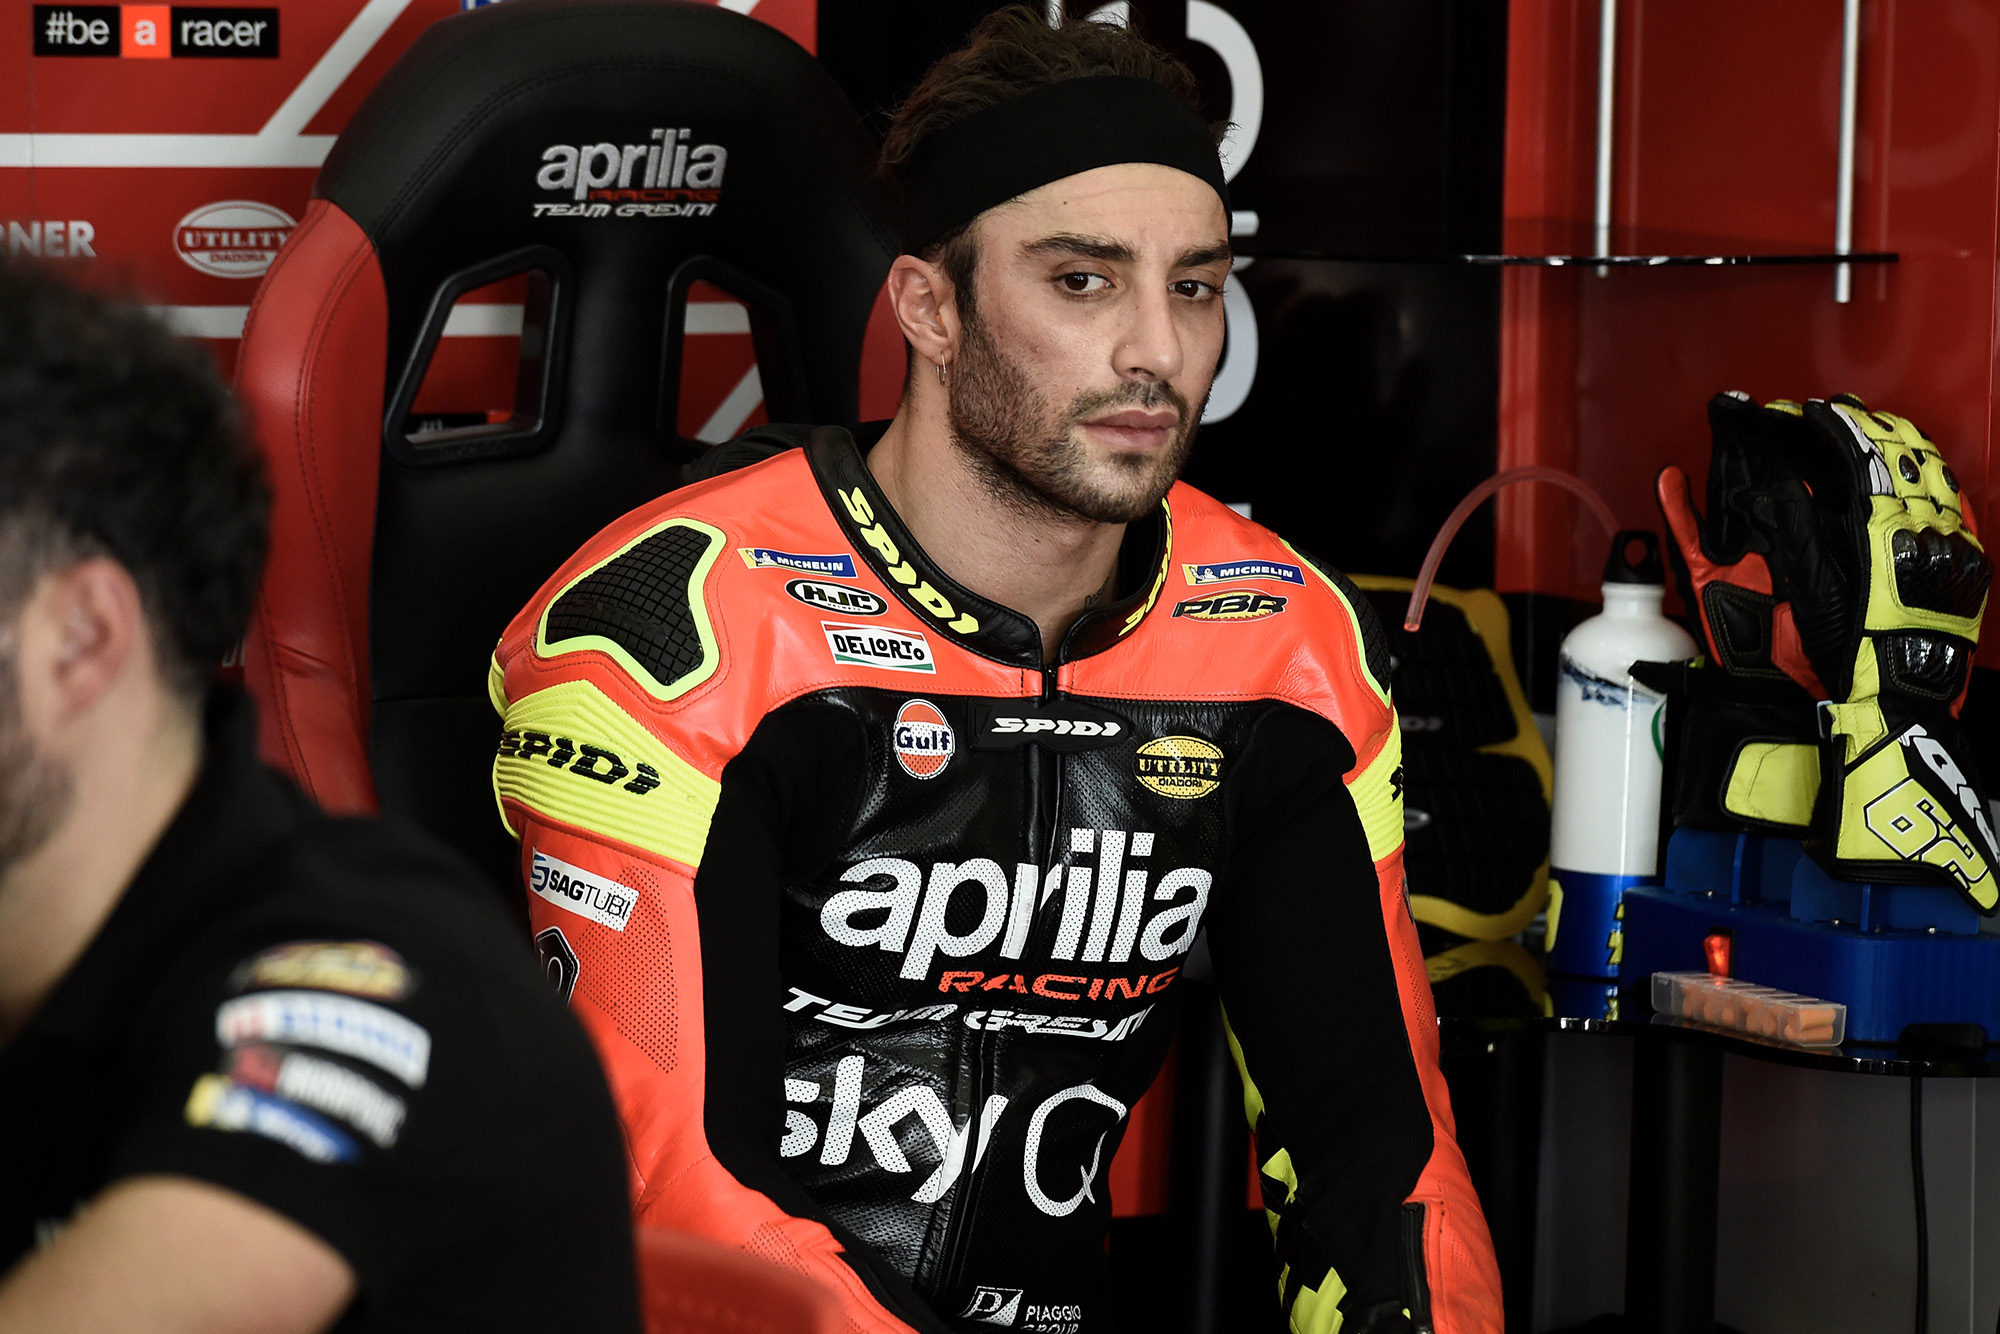 Andrea Iannone 'may have eaten contaminated food' as B sample reportedly tests positive for drug